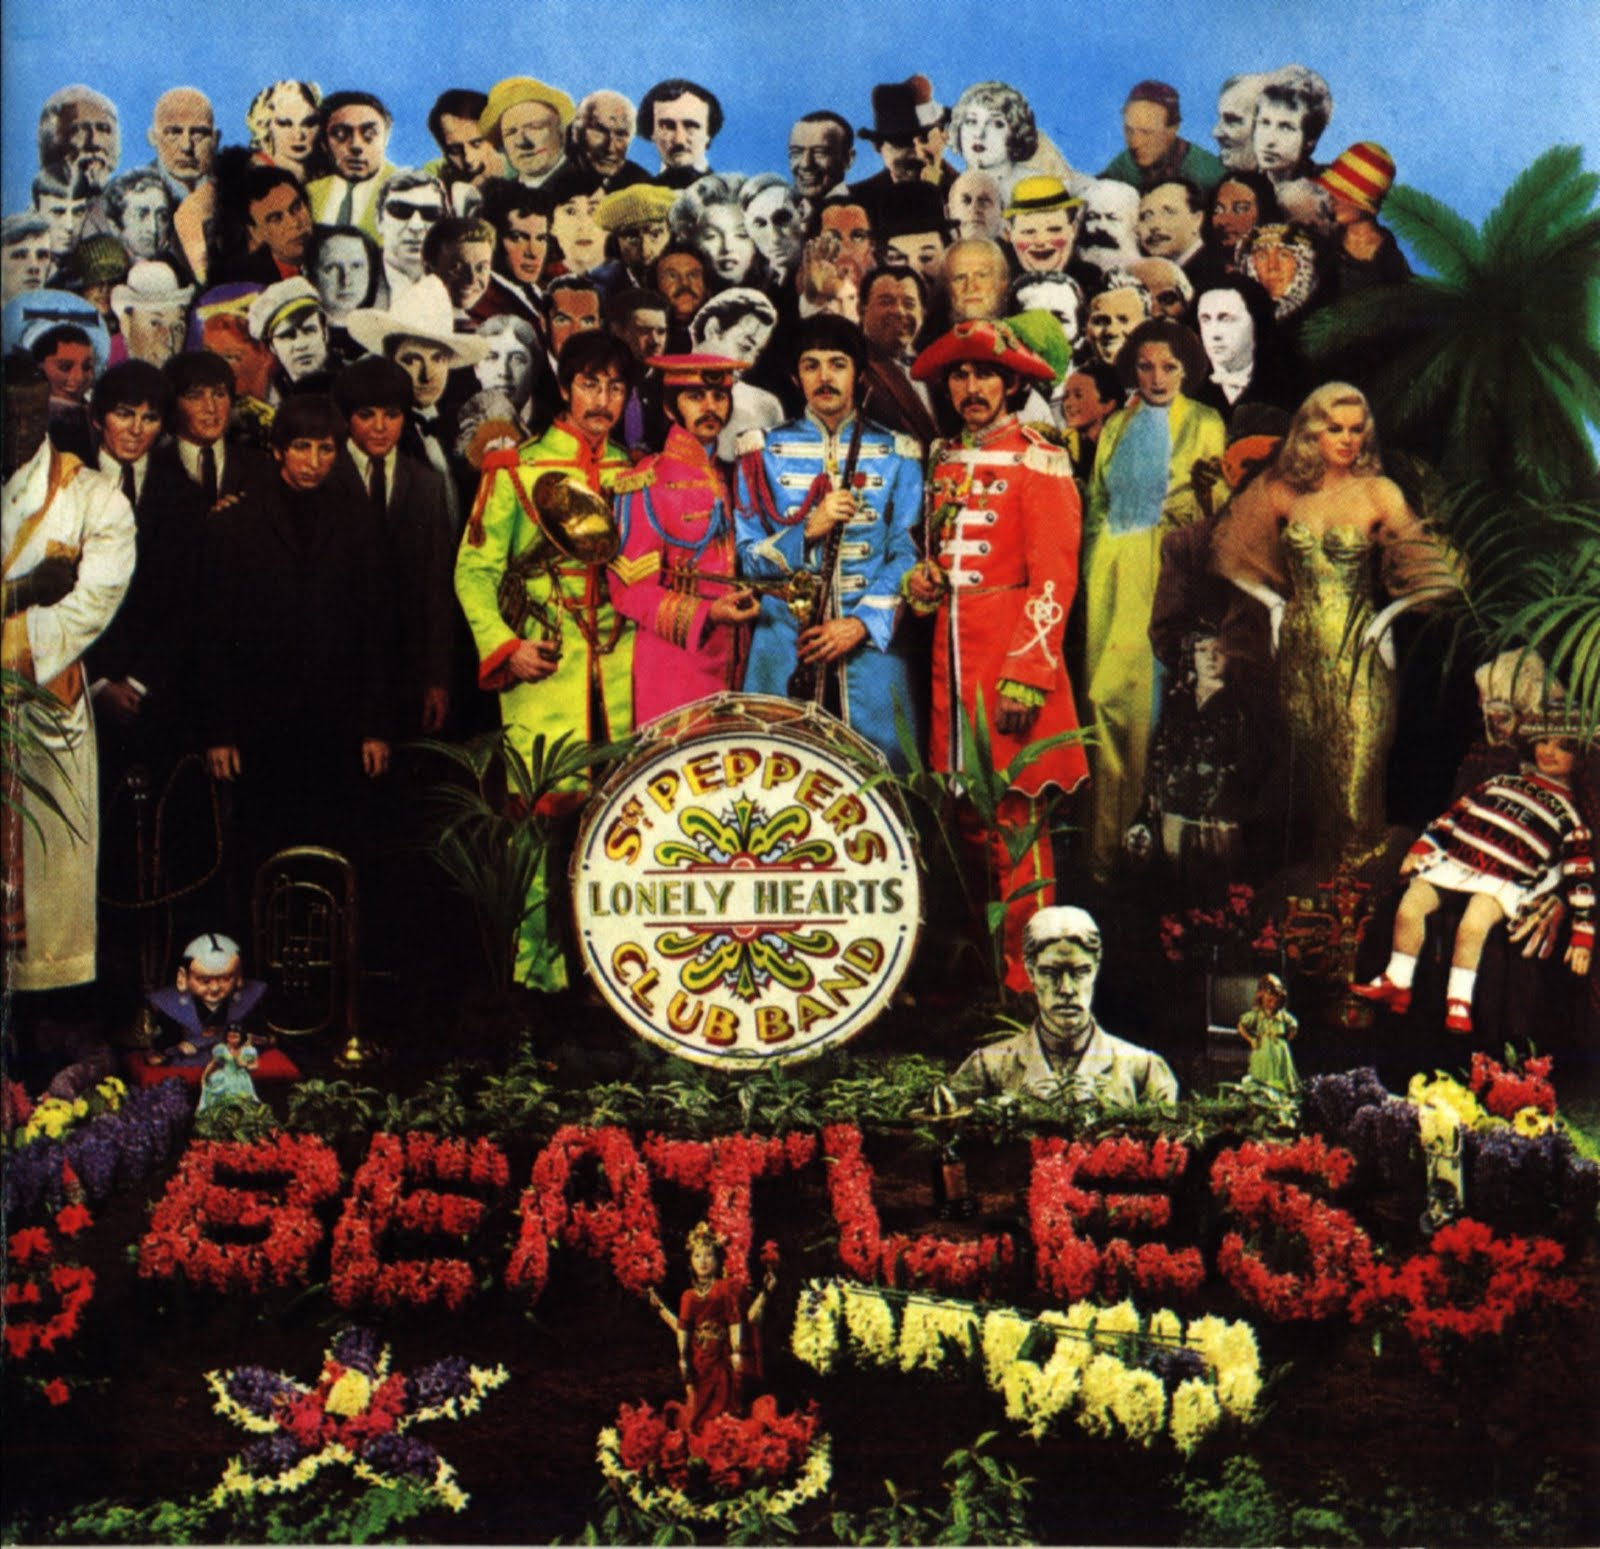 ALBUM OF THE WEEK: Sgt. Peppers Lonely Heart Club Band